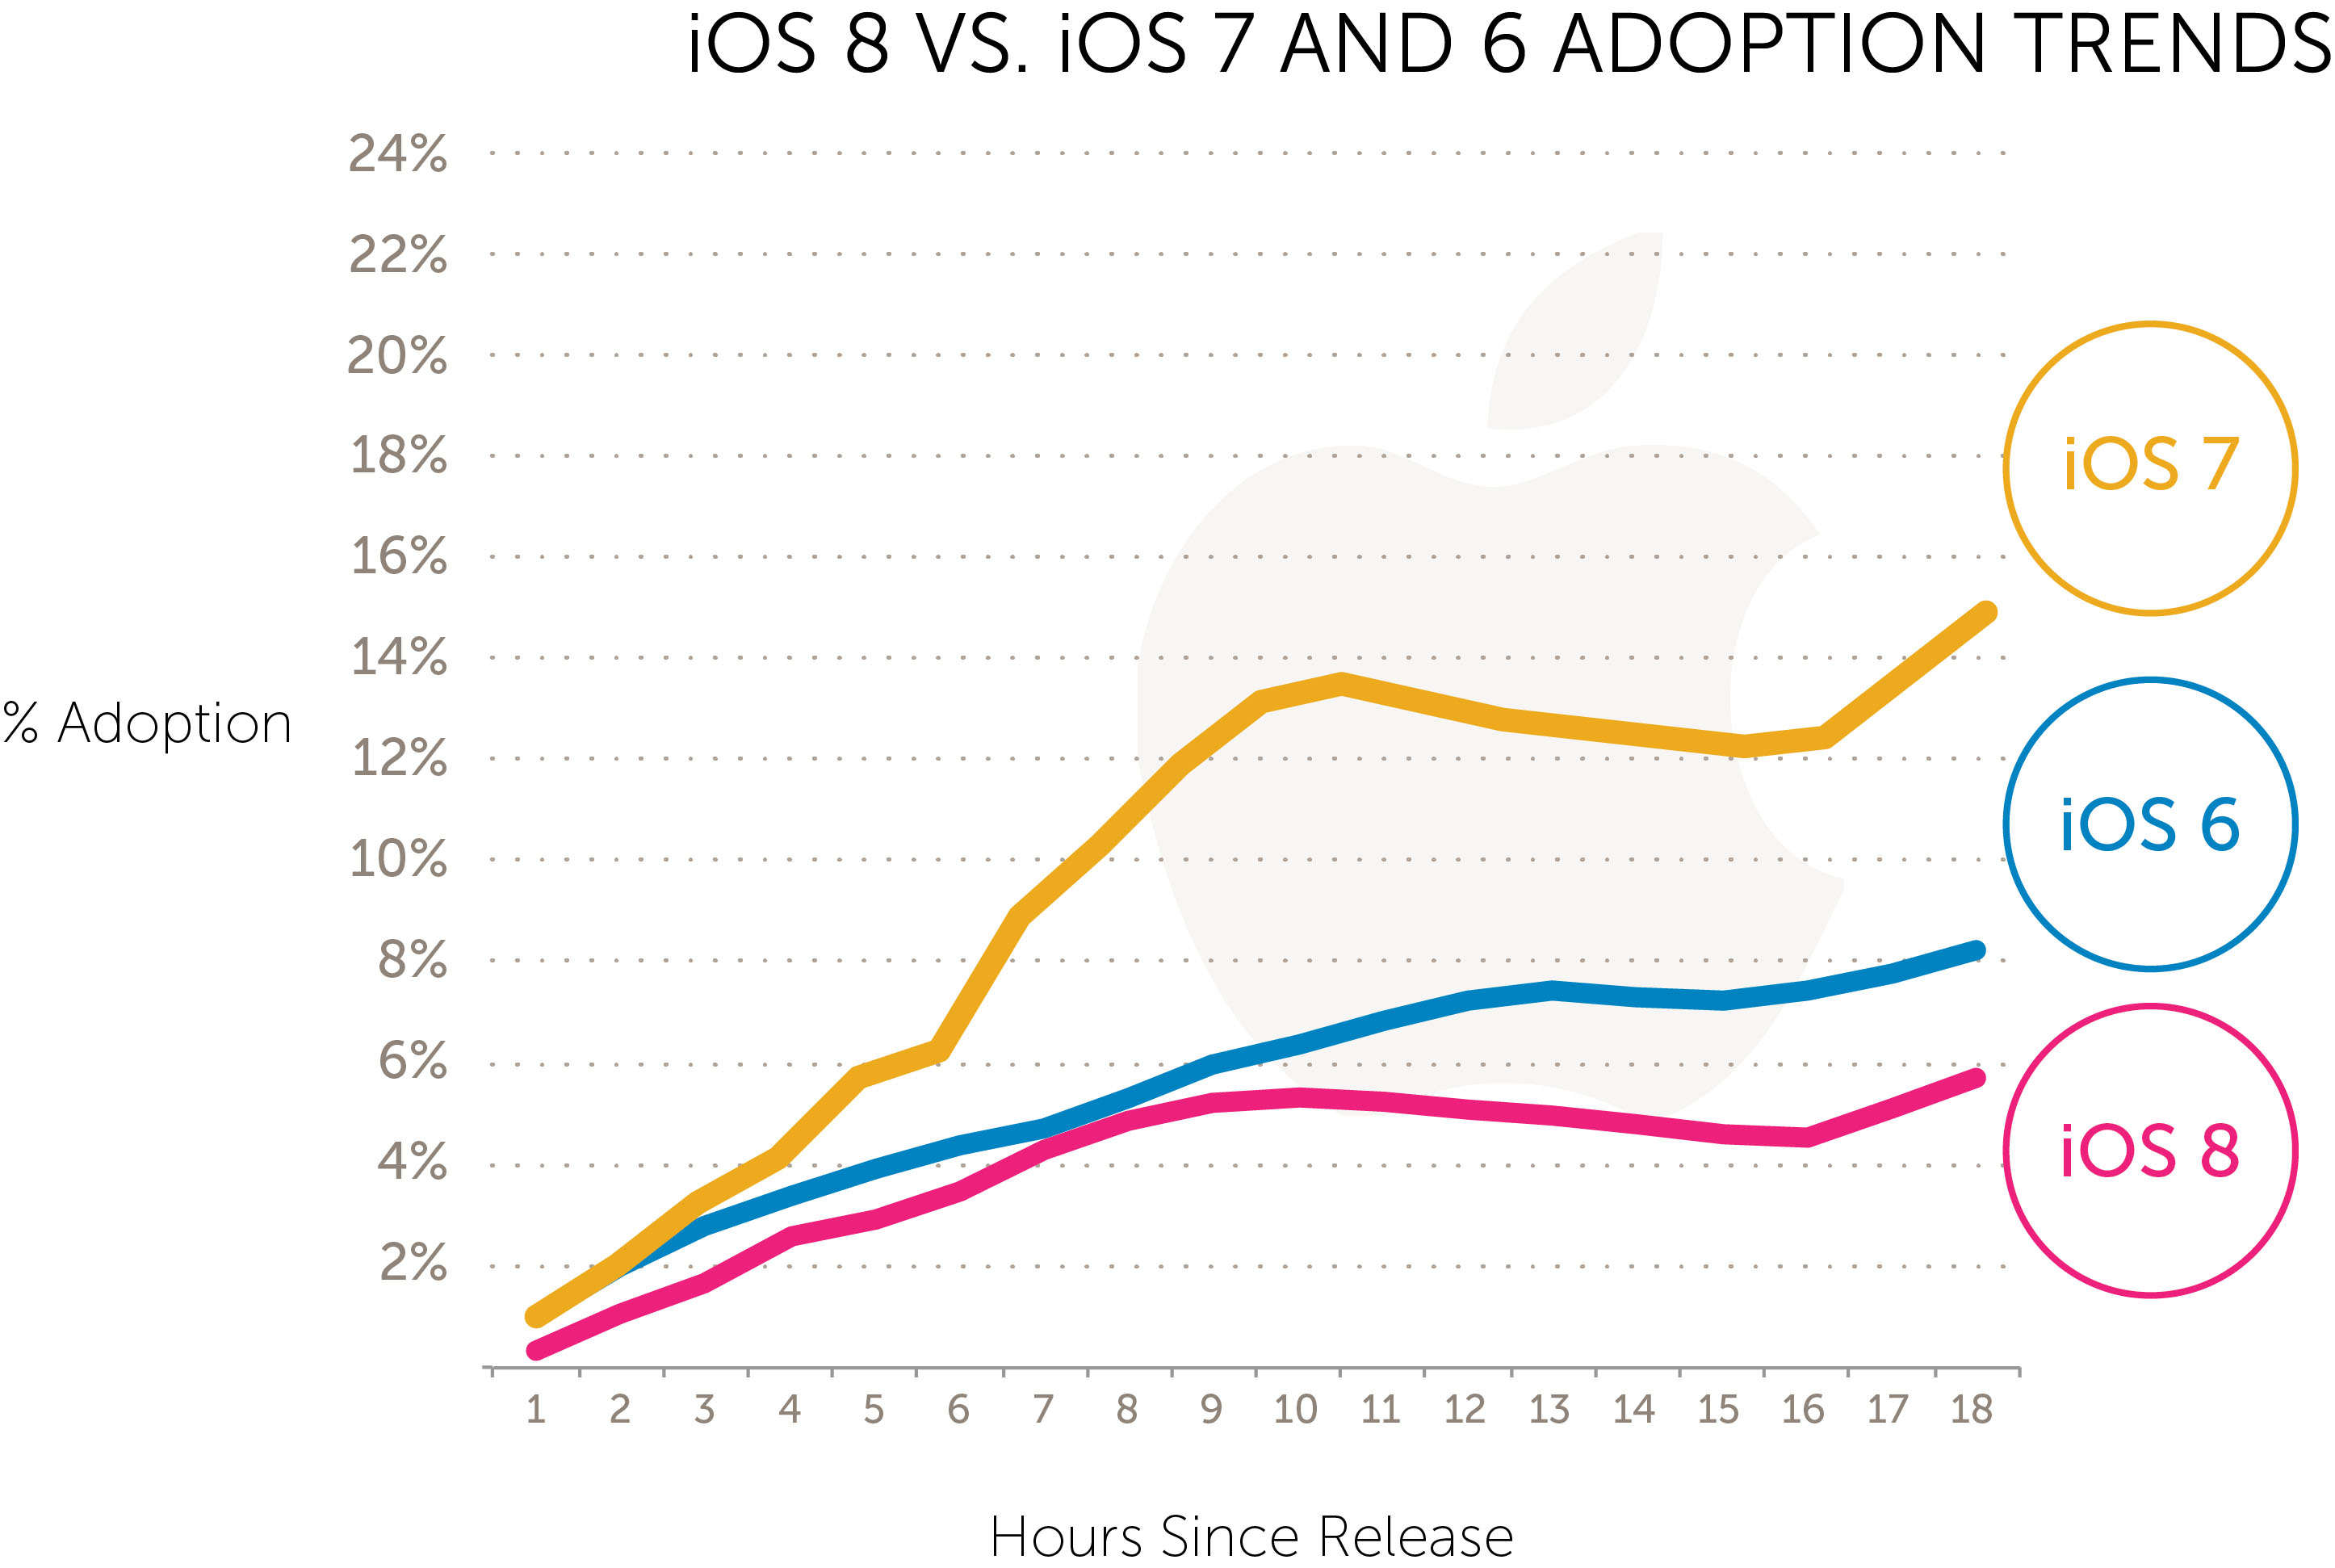 Apple iOS 8 adoption rate is slower than iOS 7 and iOS 6